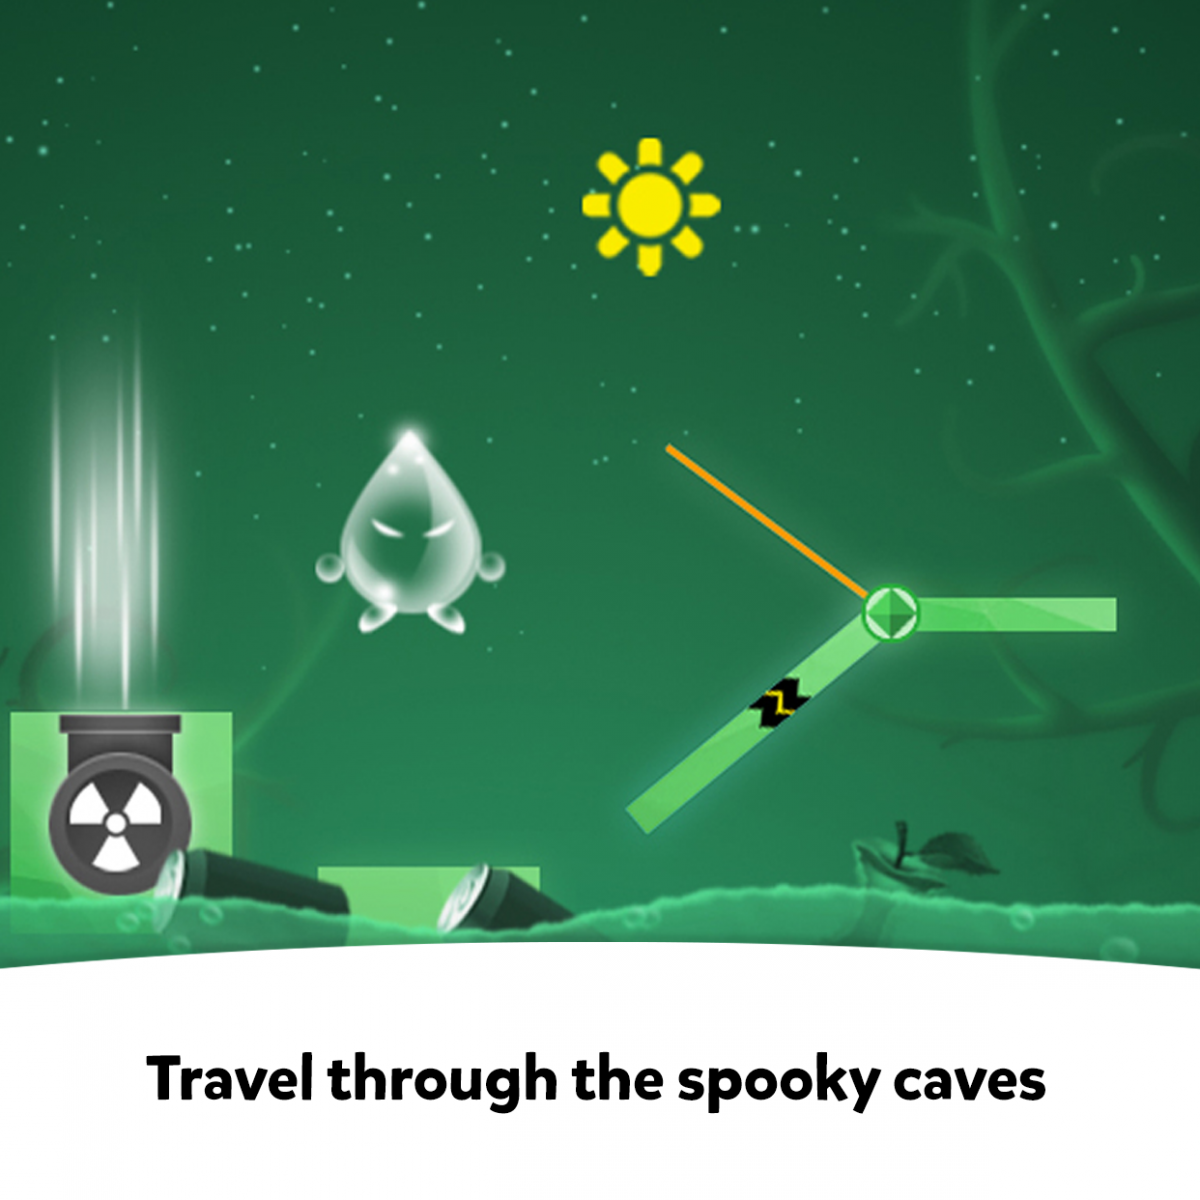 SKIDOS - Travel through the spooky caves